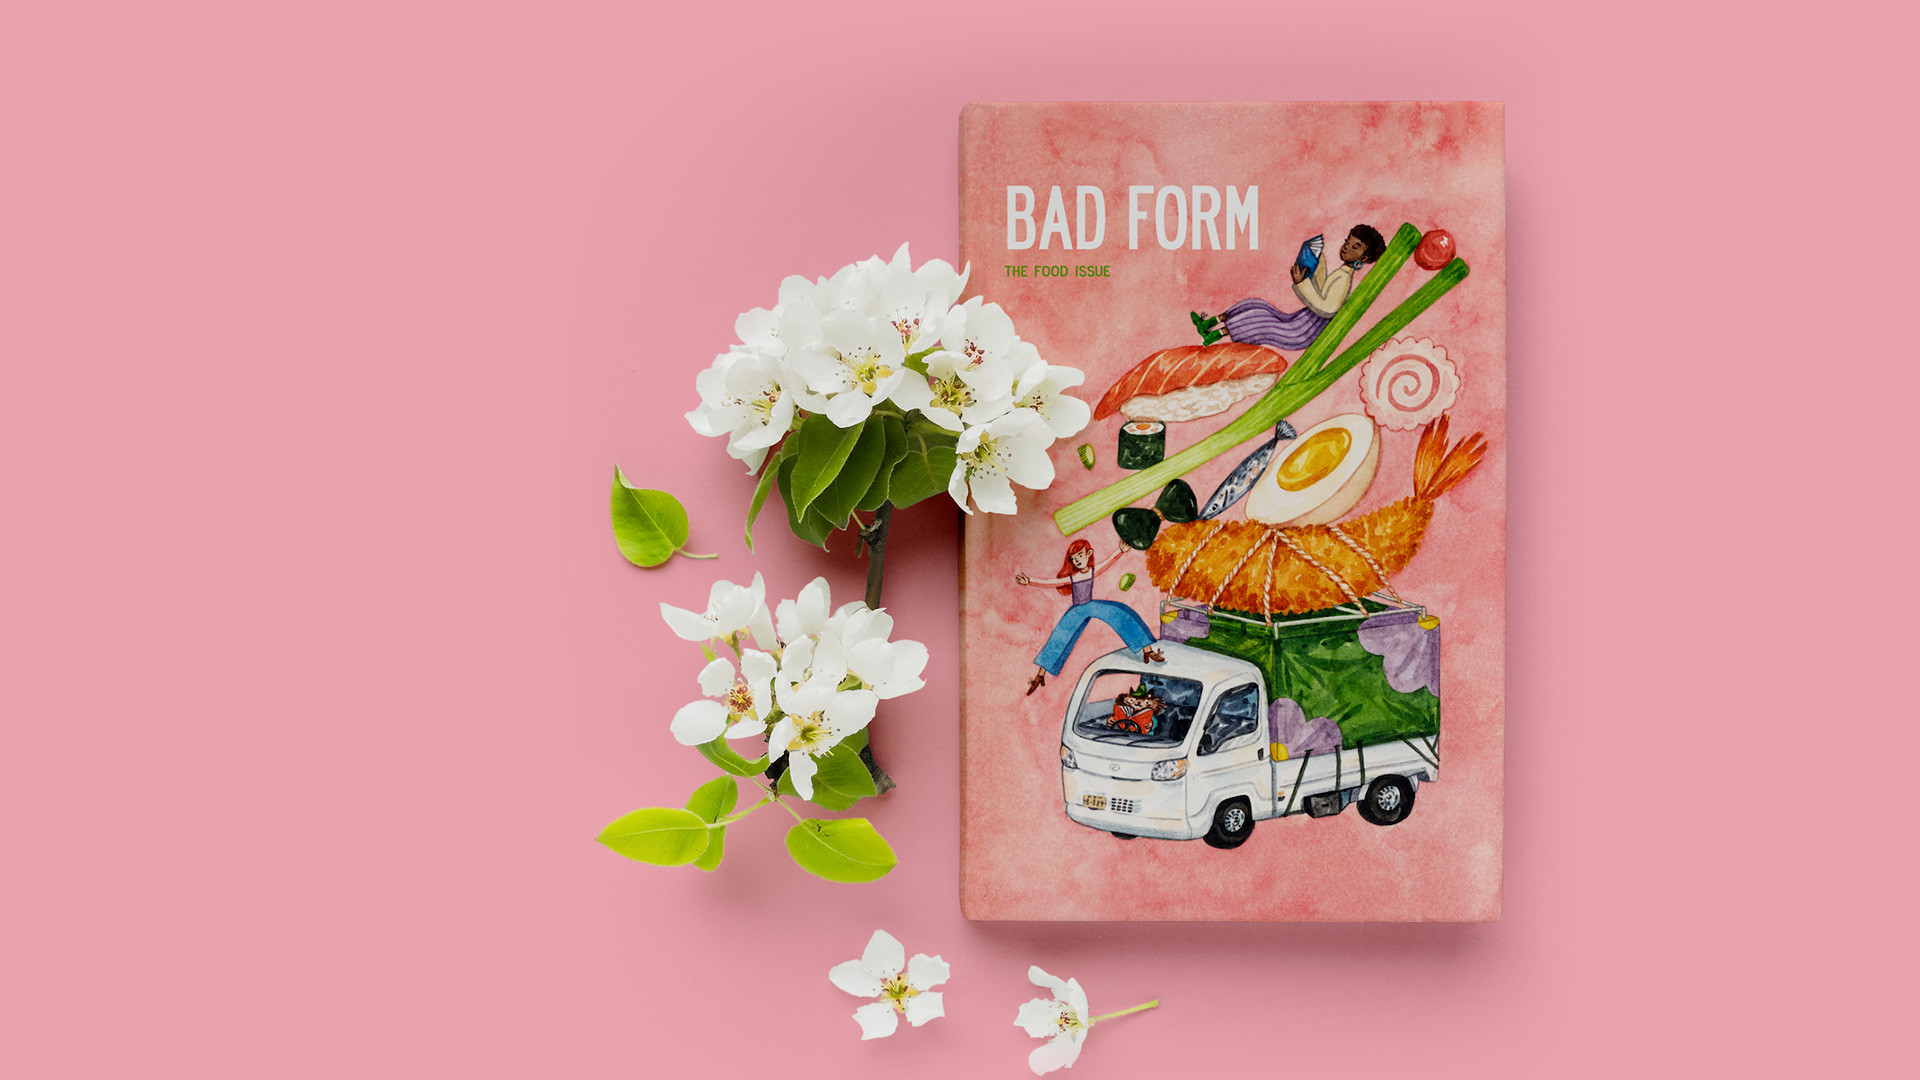 Bad Form's new food issue   The cover